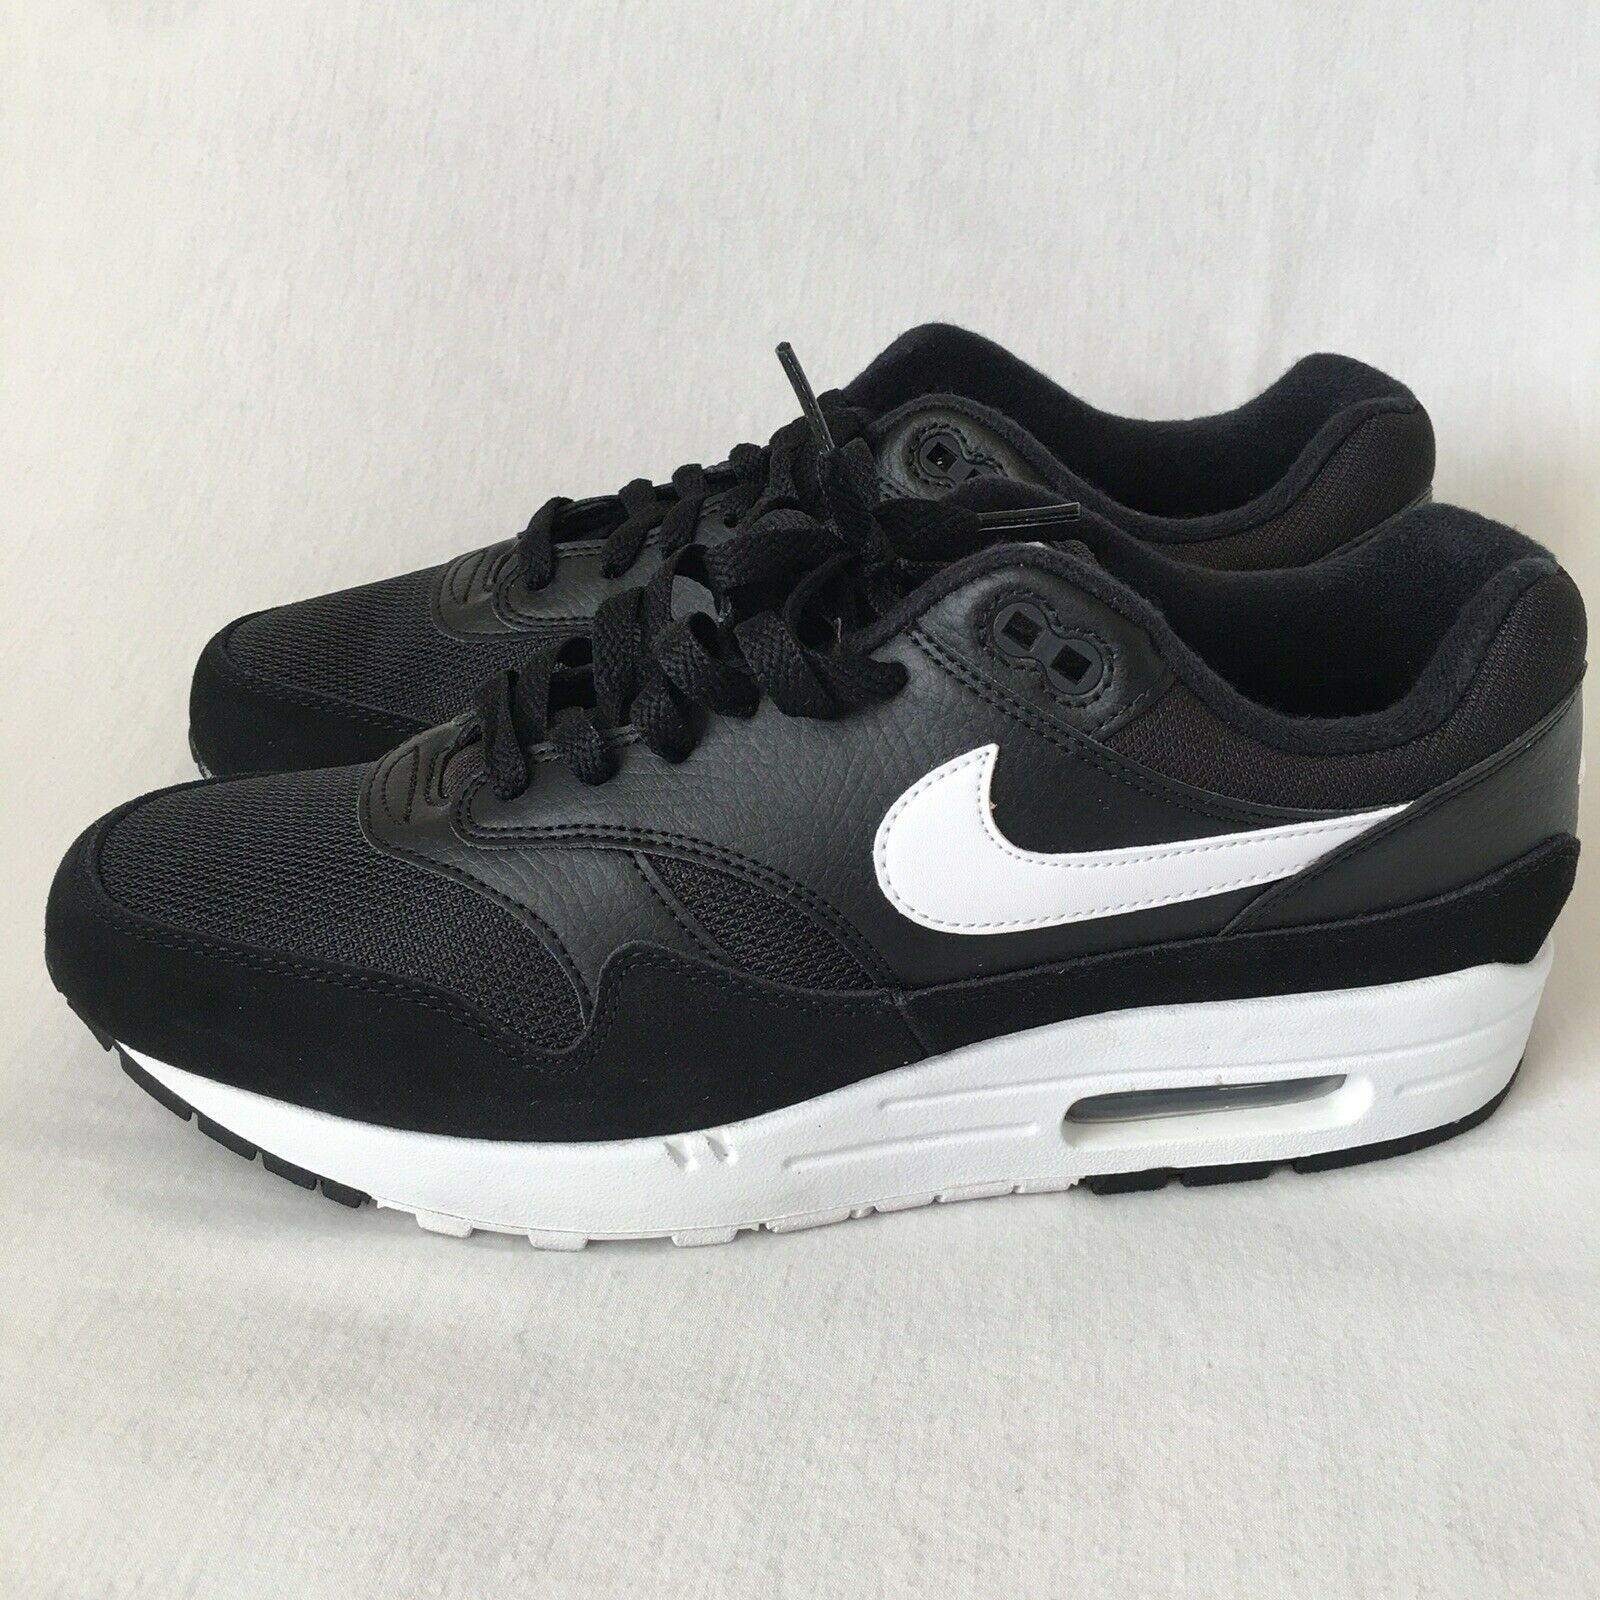 hogar Plata Pacer  Nike Air Max 1 Size 10 UK EU 45 Coral-mars Trainers Men's Ah8145-104  Sneaker for sale online | eBay